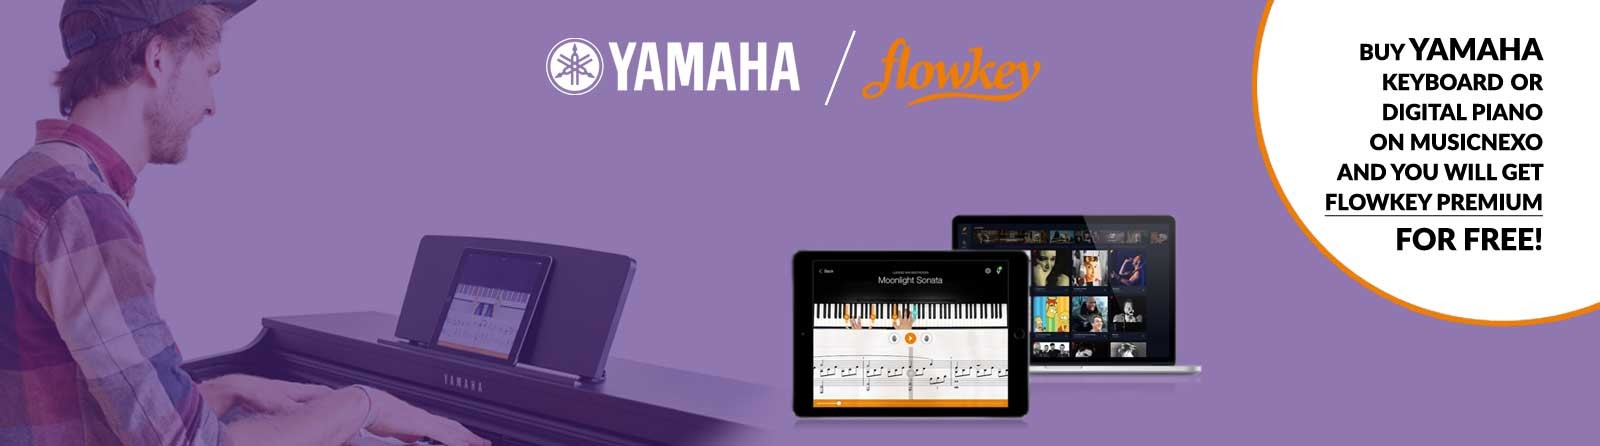 Buy a new Yamaha digital piano or keyboard and get Flowkey Premium for free!